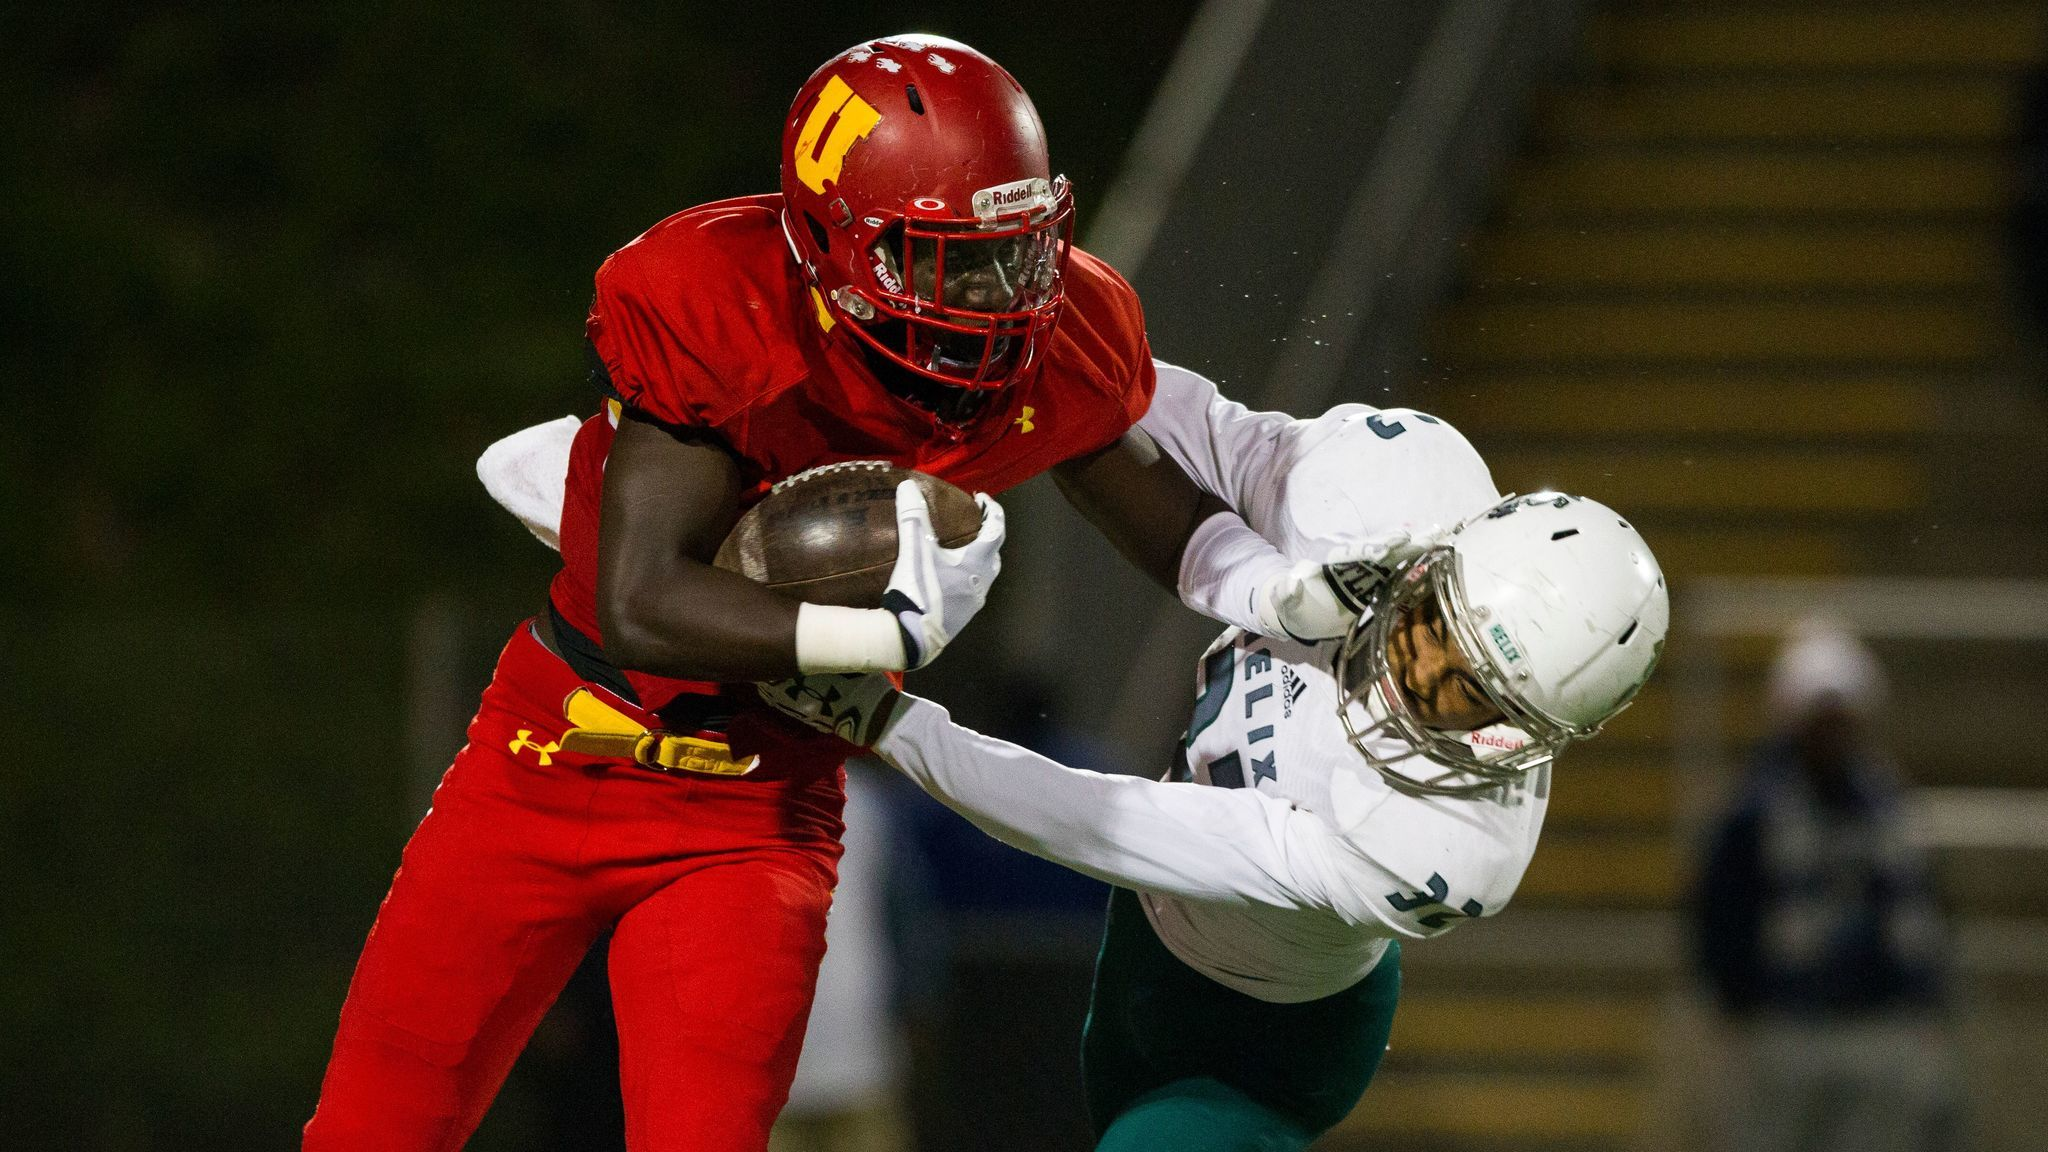 Cathedral Catholic senior Jordan Genmark Heath initially committed to Cal but later accepted a scholarship offer to Notre Dame.